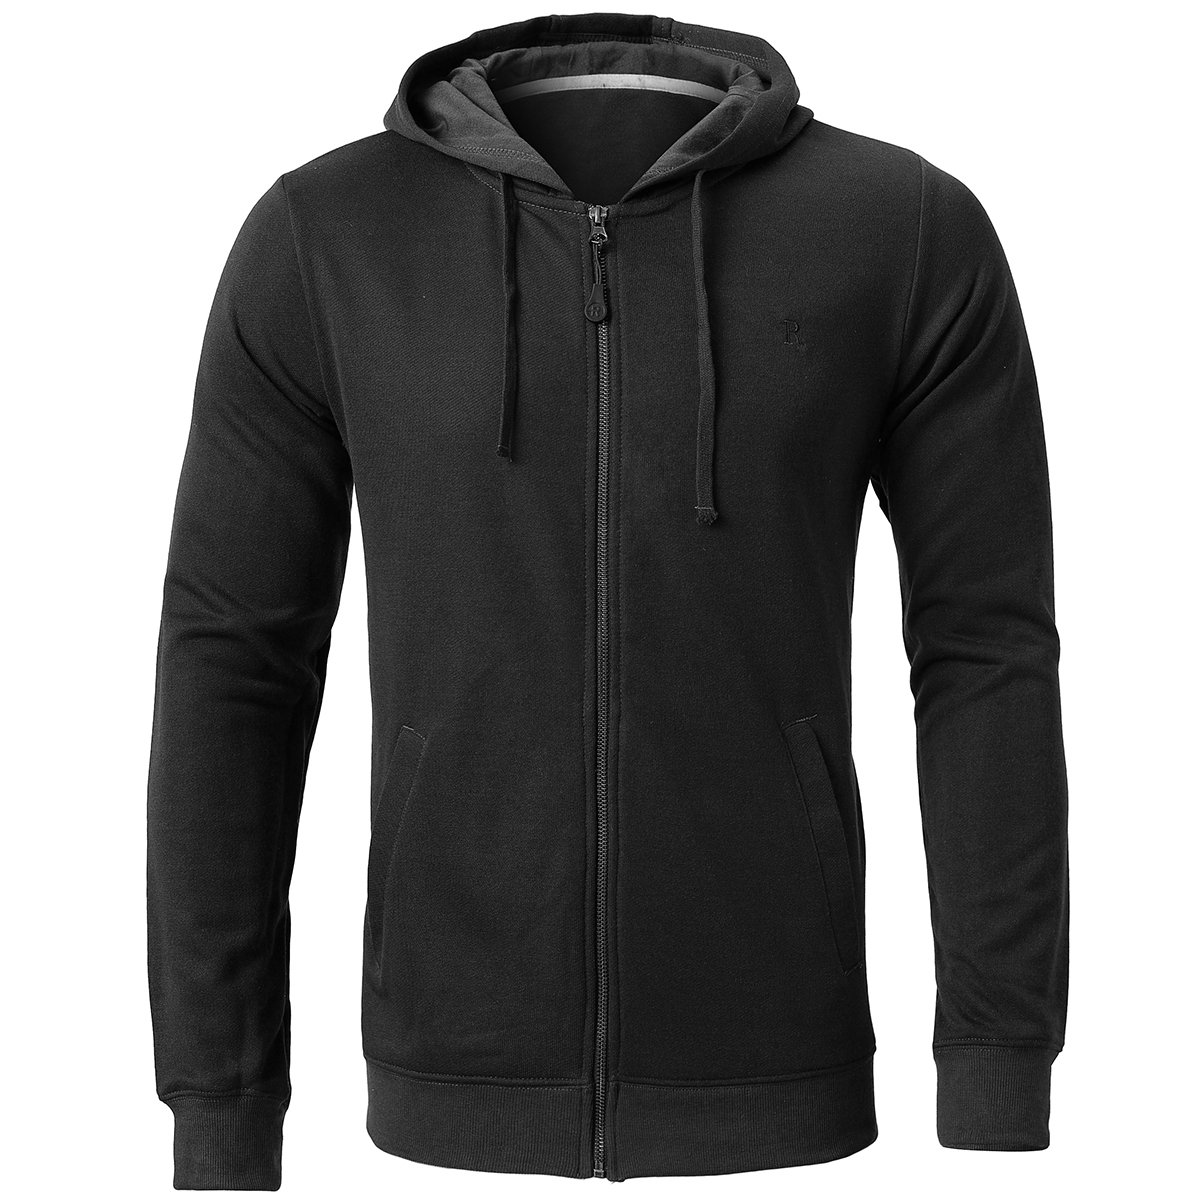 INFLATION Men's Zip-up Hoodie Long Sleeve French Terry Lightweight Basic Zip-up Hoodie Jacket 8 Color Choices